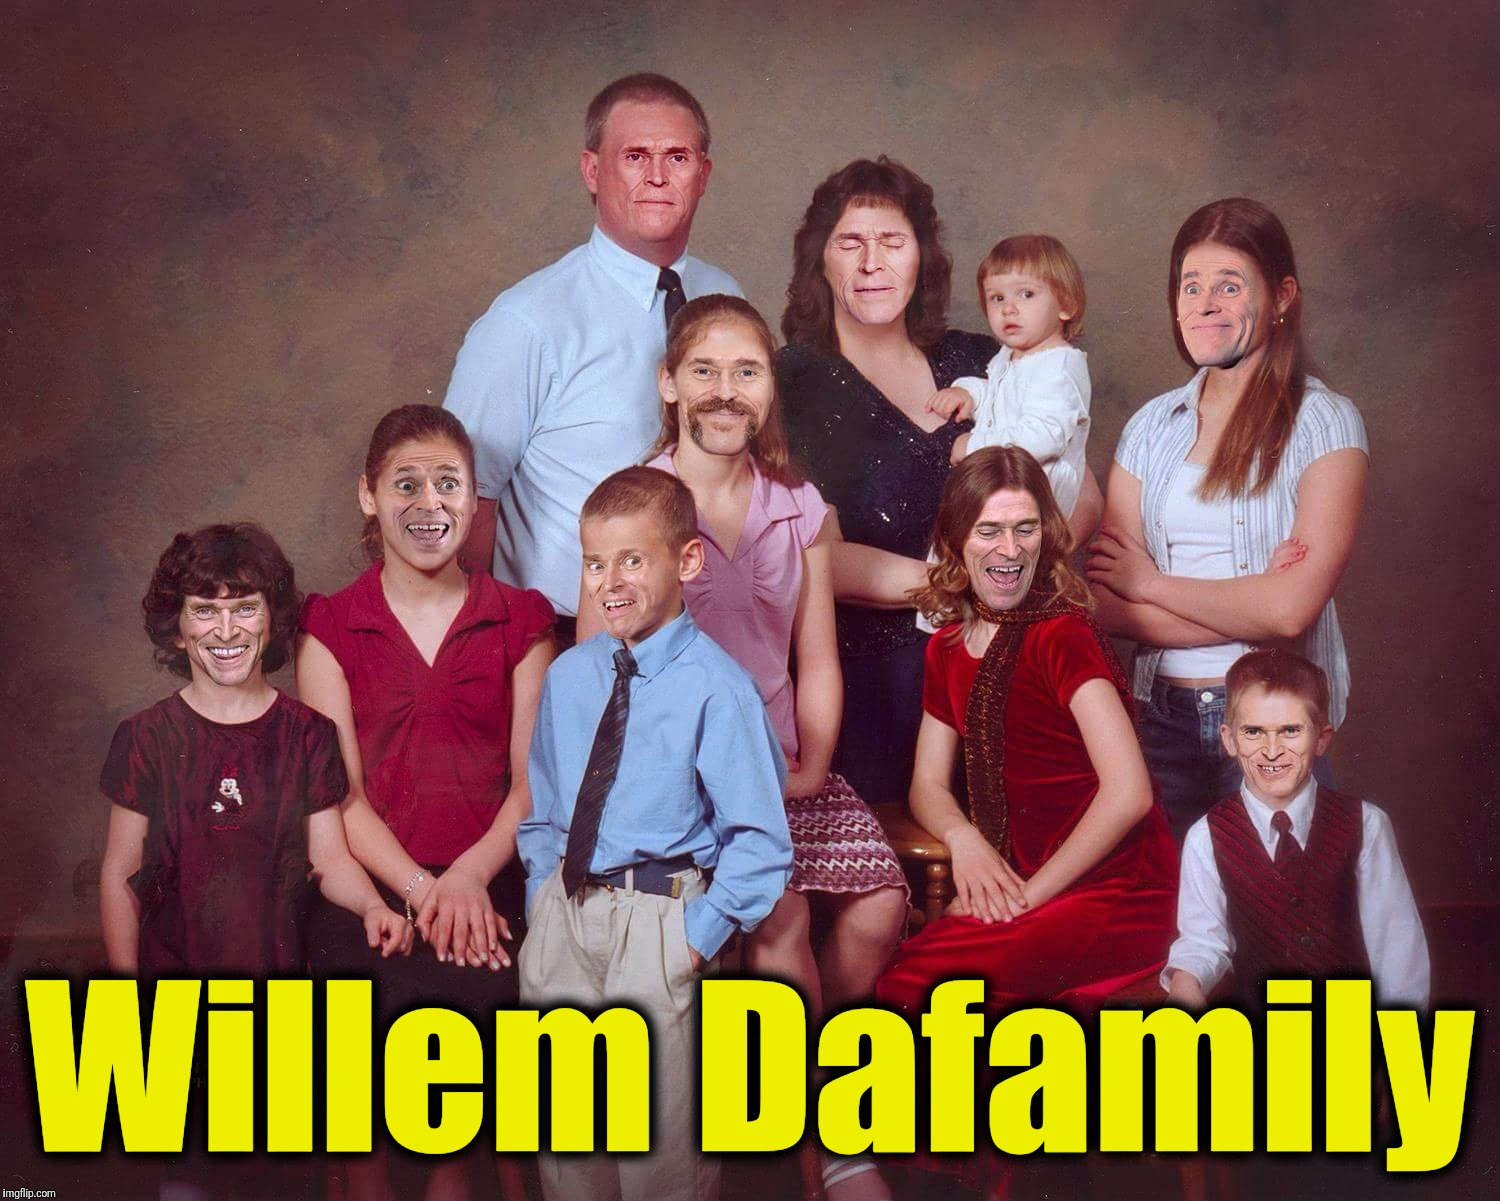 Willem Dafoe's family photo.  The family resemblance is striking... | Willem Dafamily | image tagged in willem dafoe,family photo | made w/ Imgflip meme maker